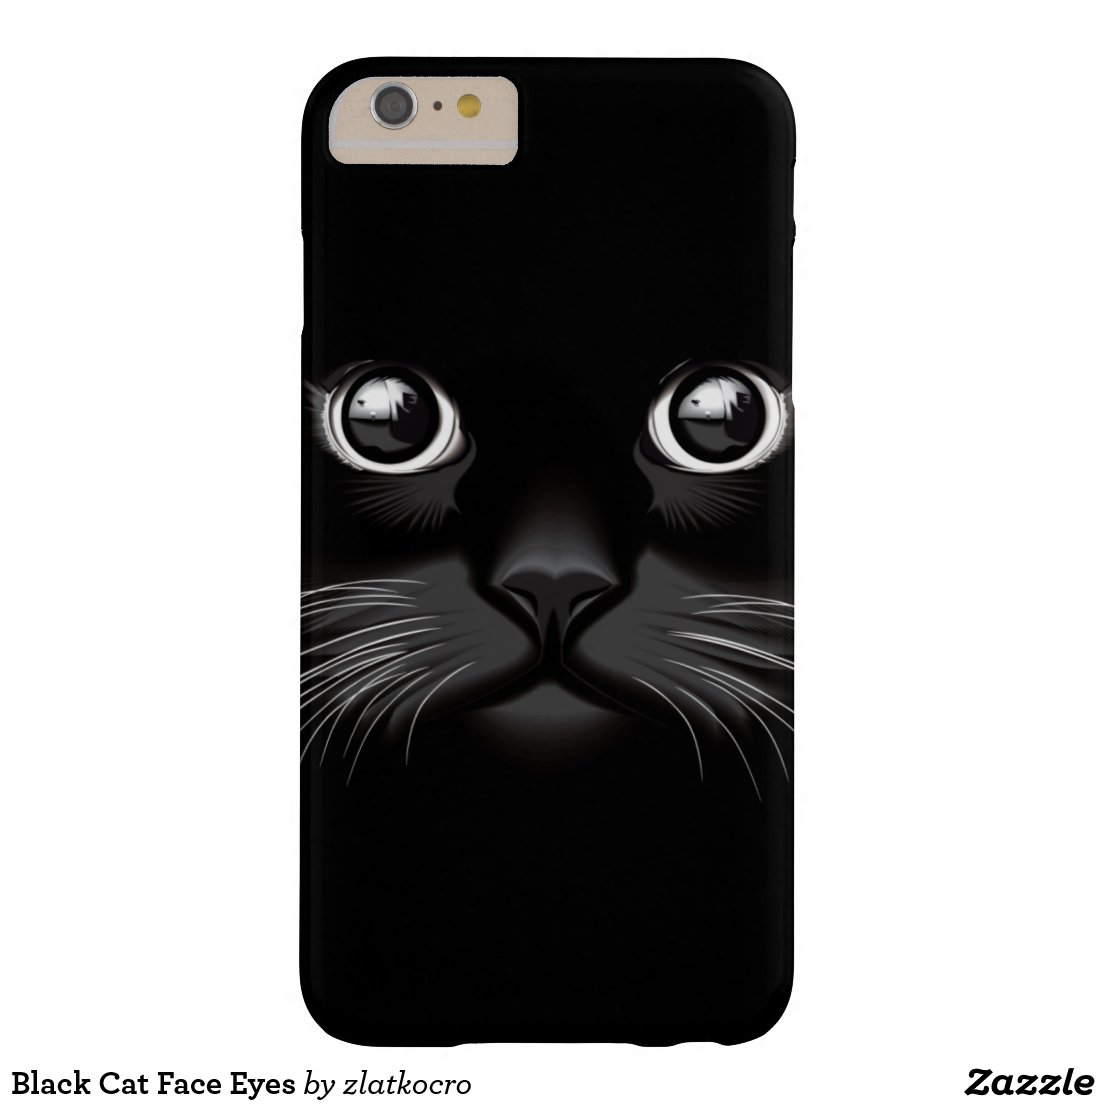 Black Cat Face Eyes iPhone Case